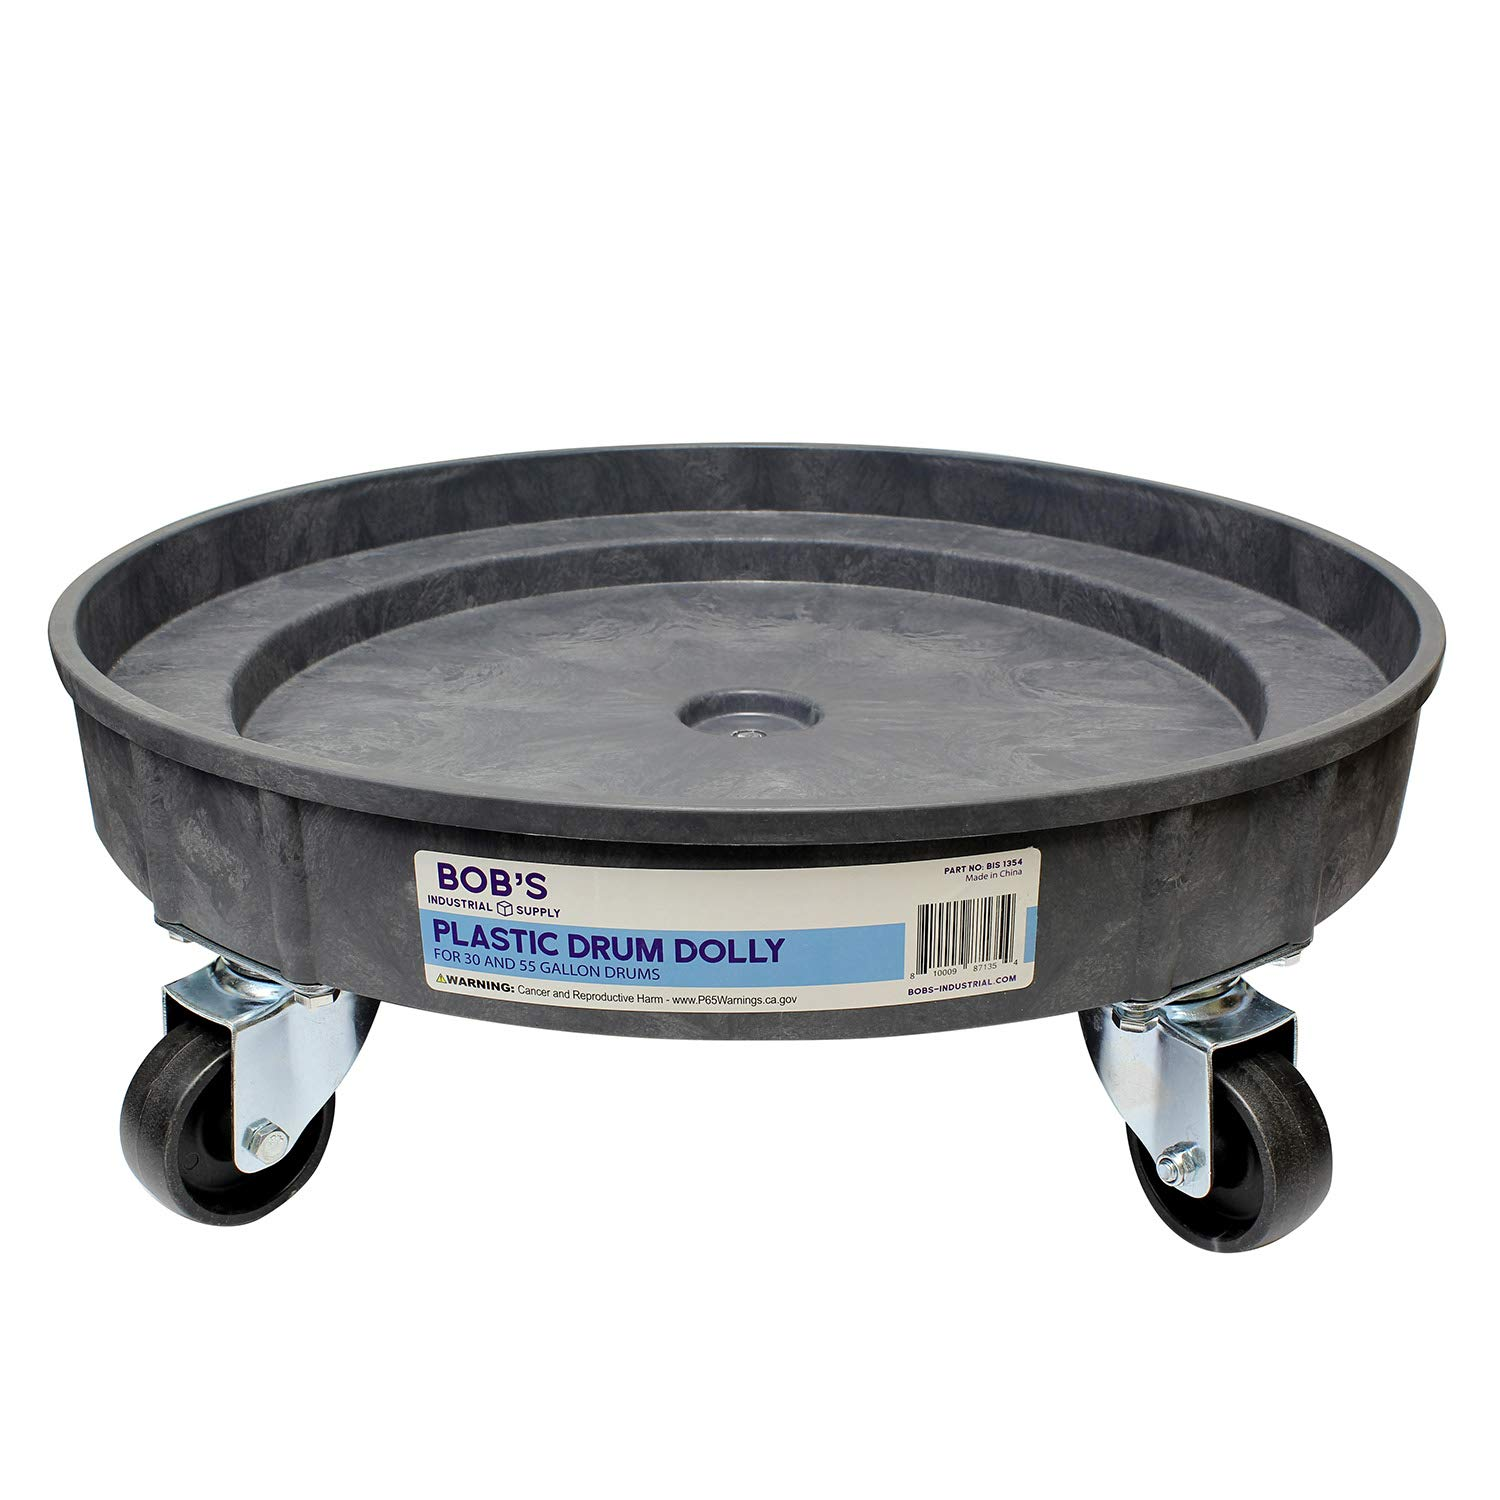 BISupply | Plastic 30 55 Gal Drum Dolly Barrel Cart Barrel Dolly for 55 Gallon Drum Dolly 55 Gallon 30 Gallon Drum Dolly by BISupply (Image #2)